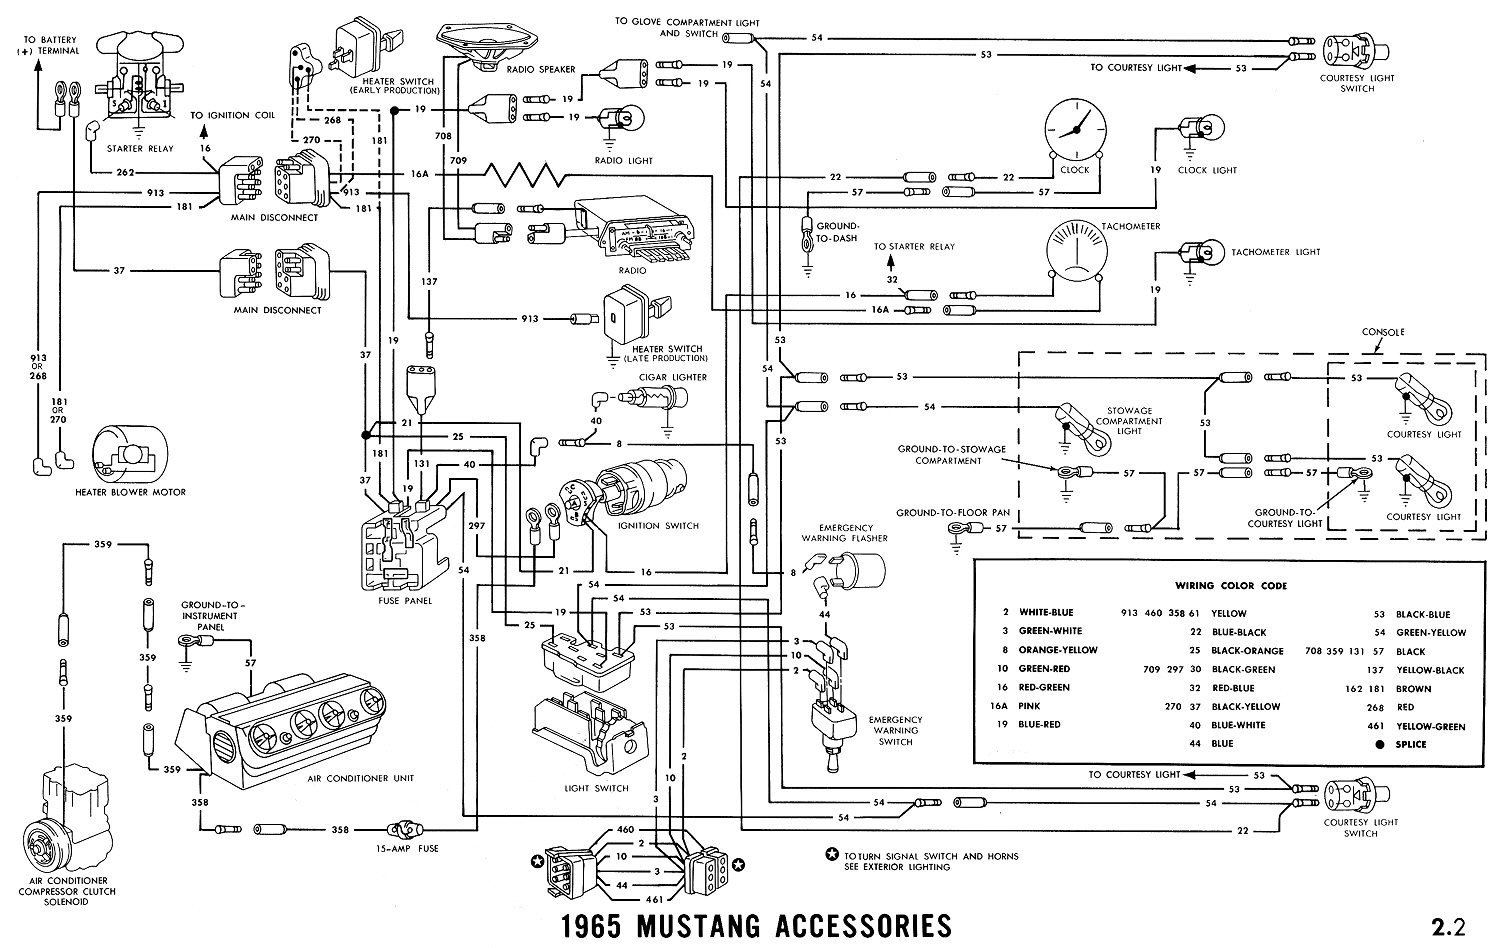 1965i 1965 mustang wiring diagrams average joe restoration 1968 corvette wiring diagram free at nearapp.co